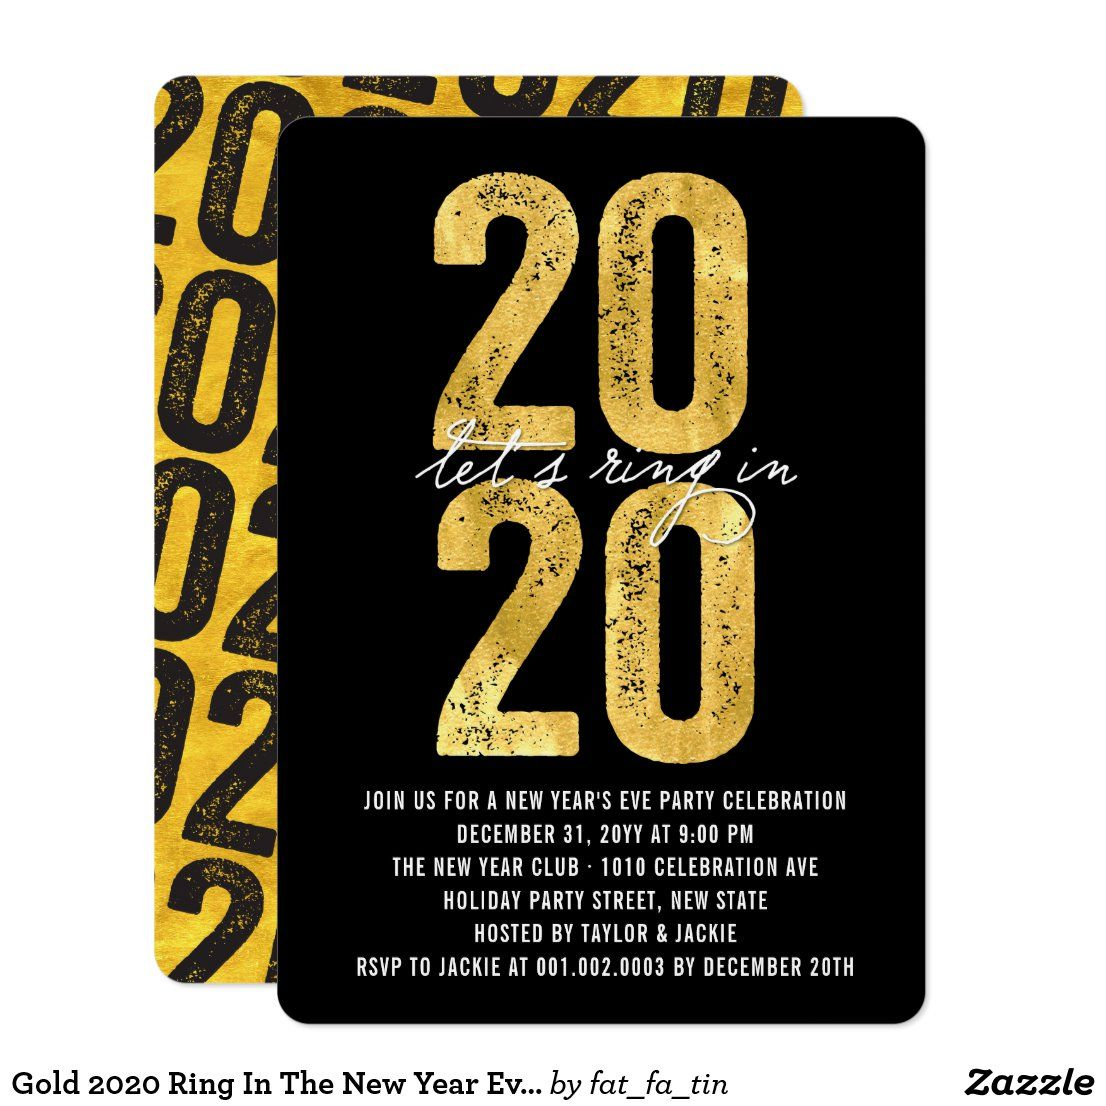 Gold 2020 Ring In The New Year Eve's Holiday Party